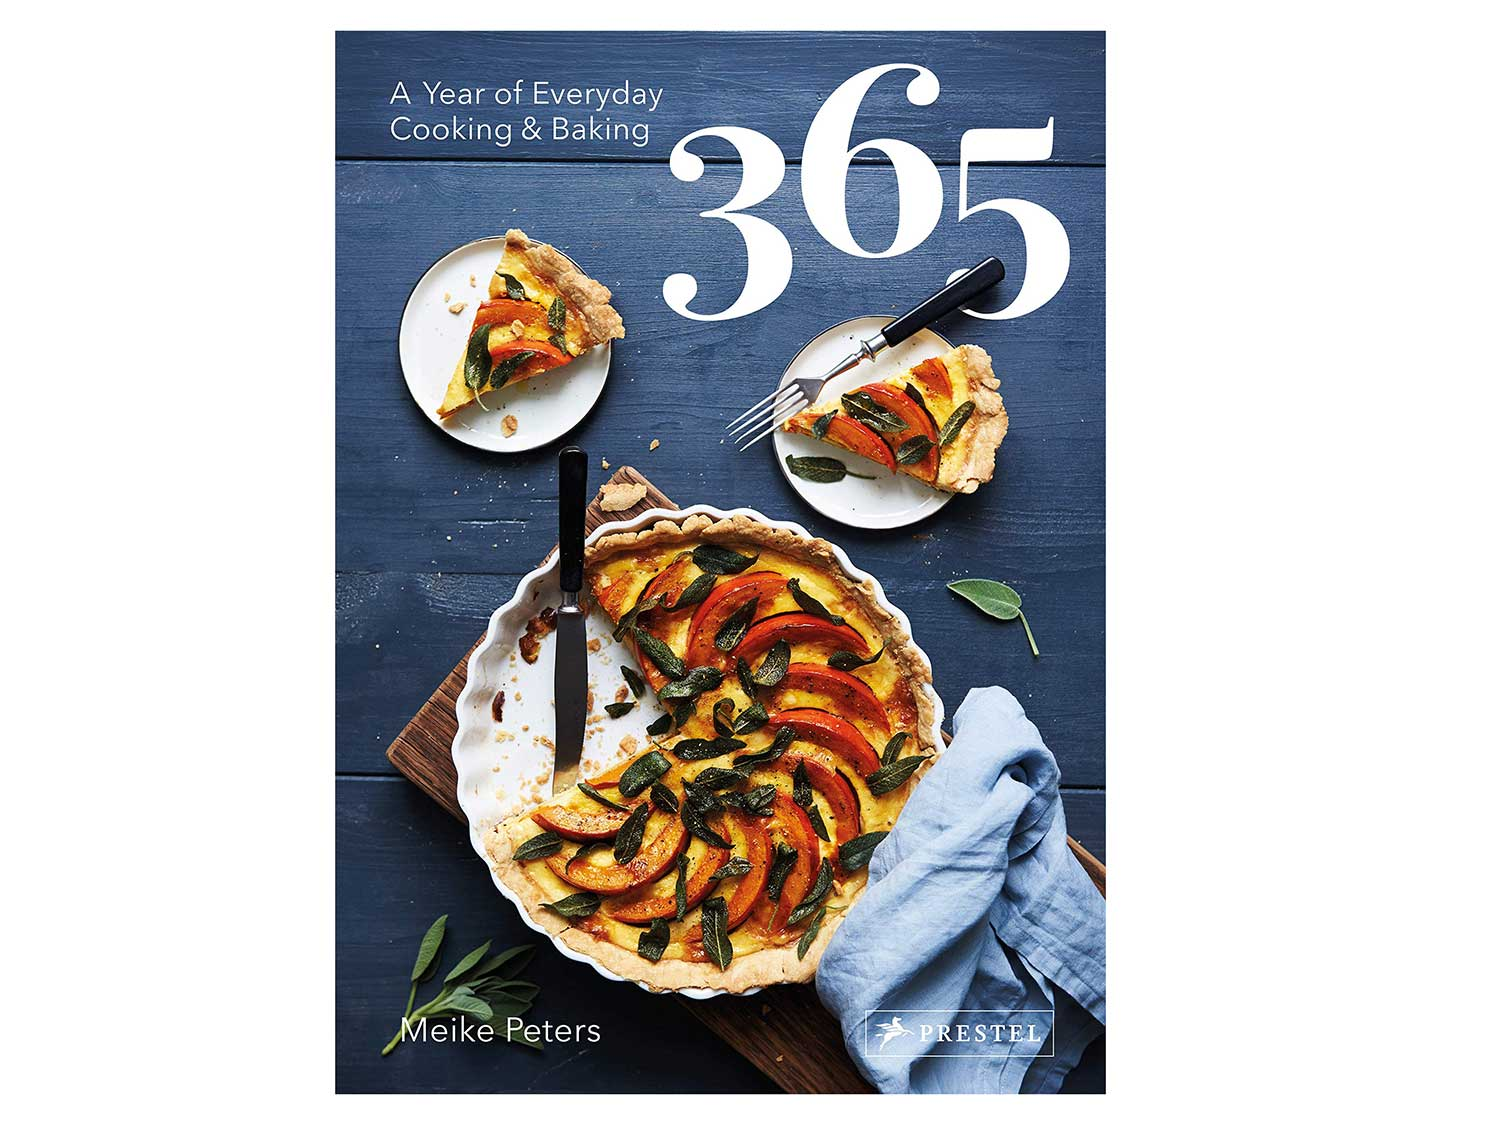 365: A Year of Everyday Cooking & Baking (Mieke Peters)